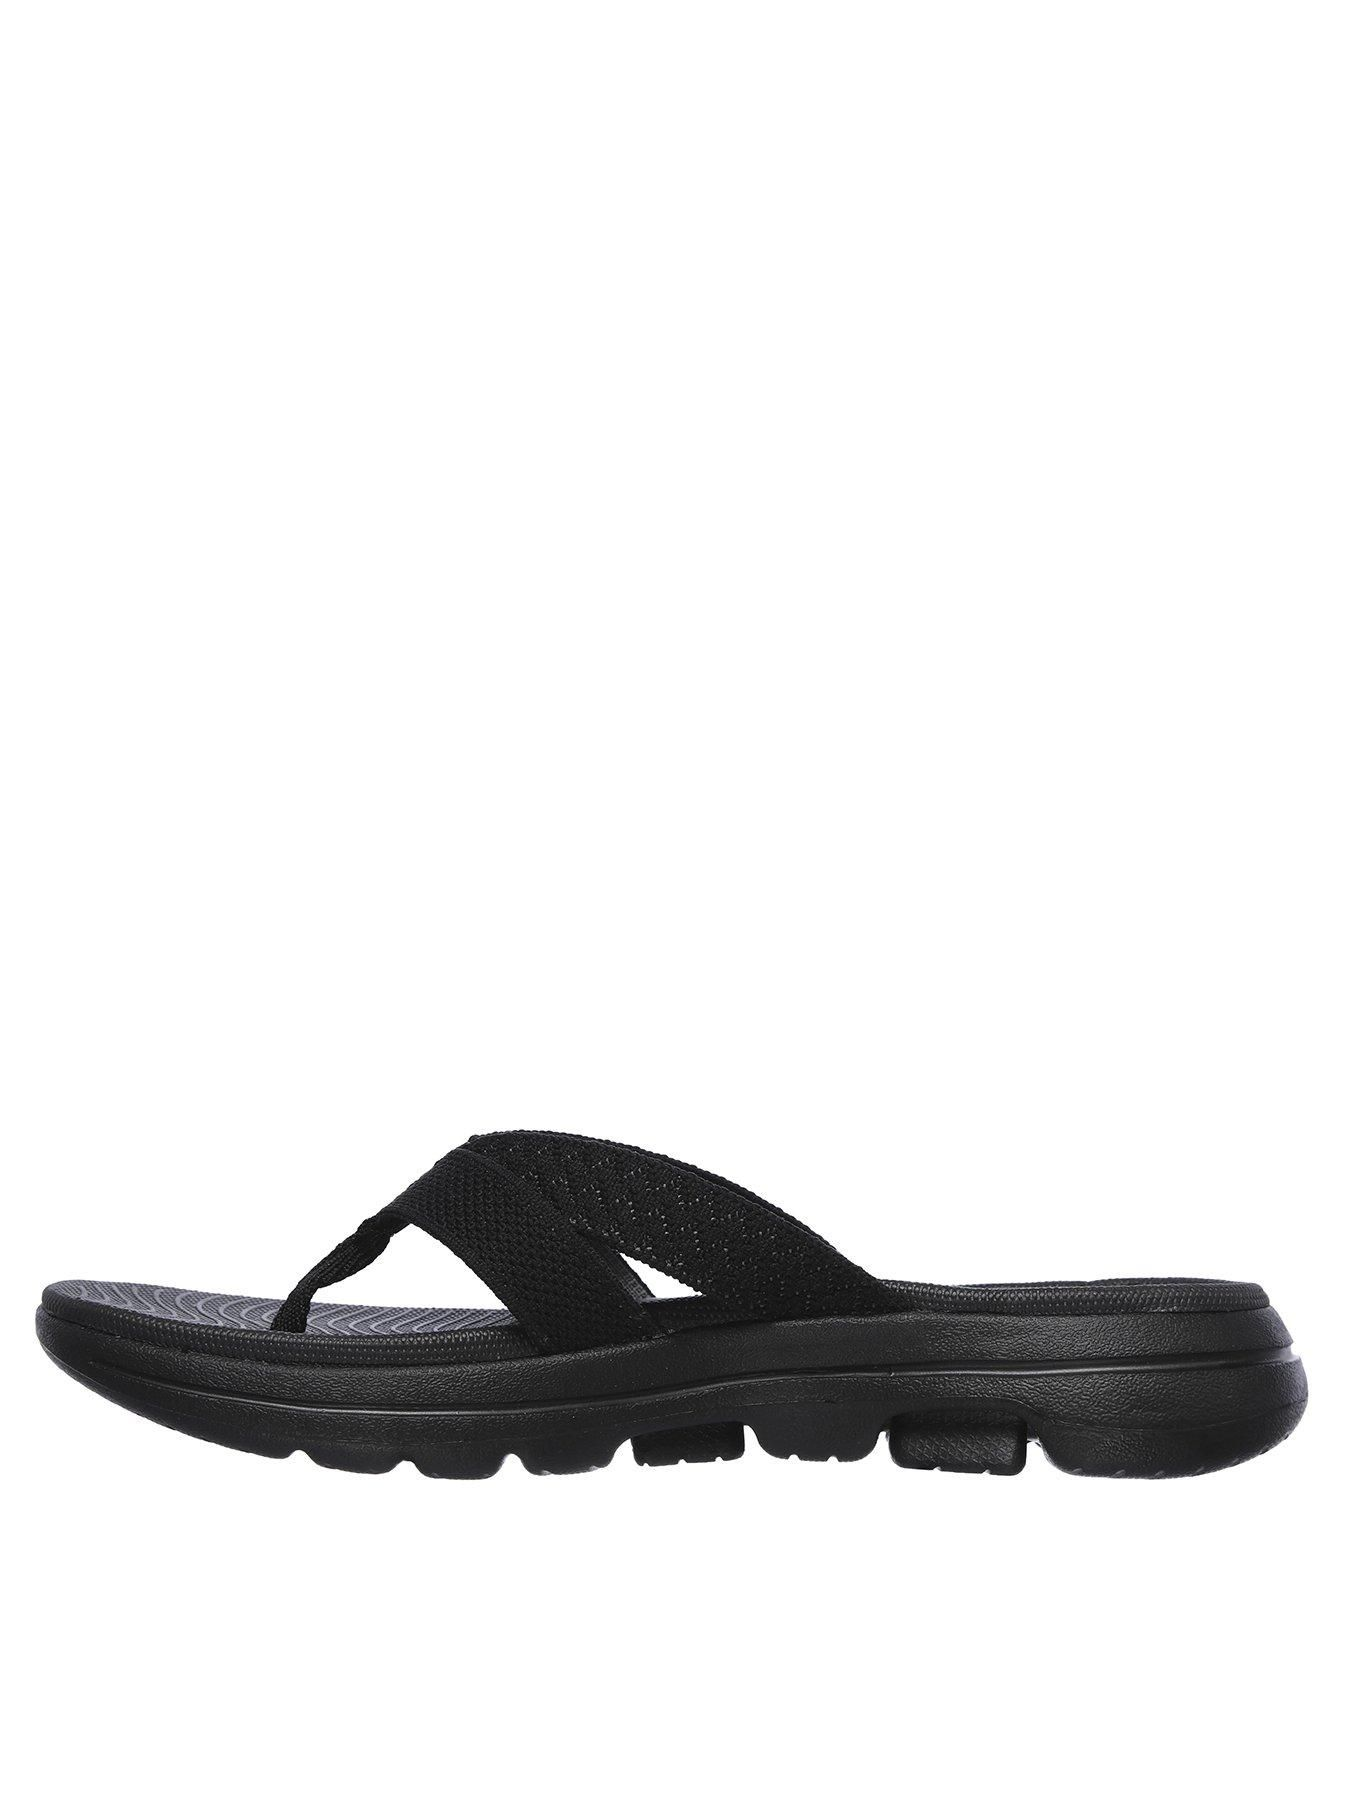 Skechers Gowalk 5 Sun Kiss Flip Flop Flat Sandals Black Black